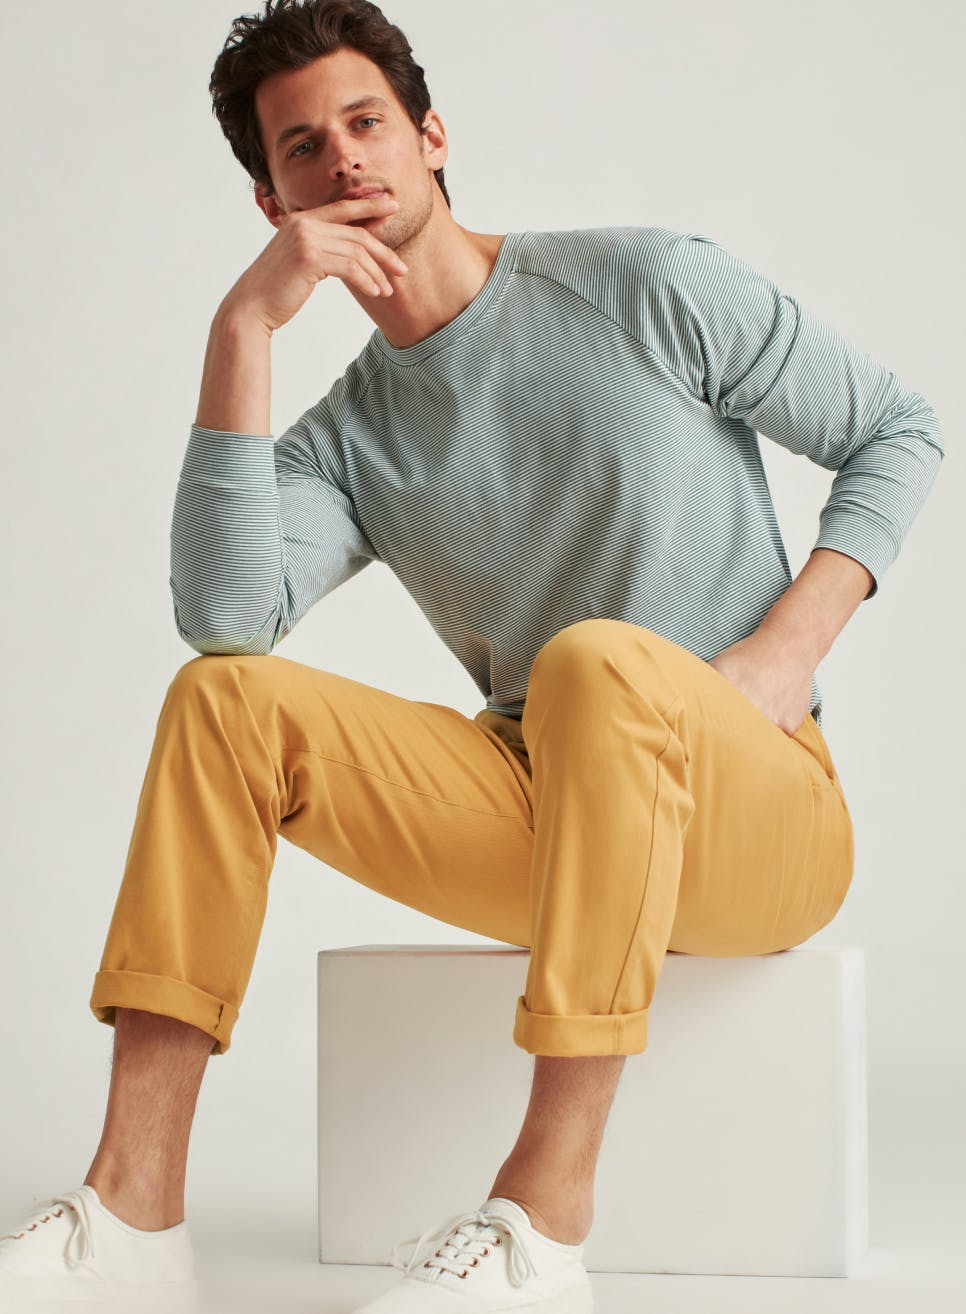 image of model in golden oak chinos